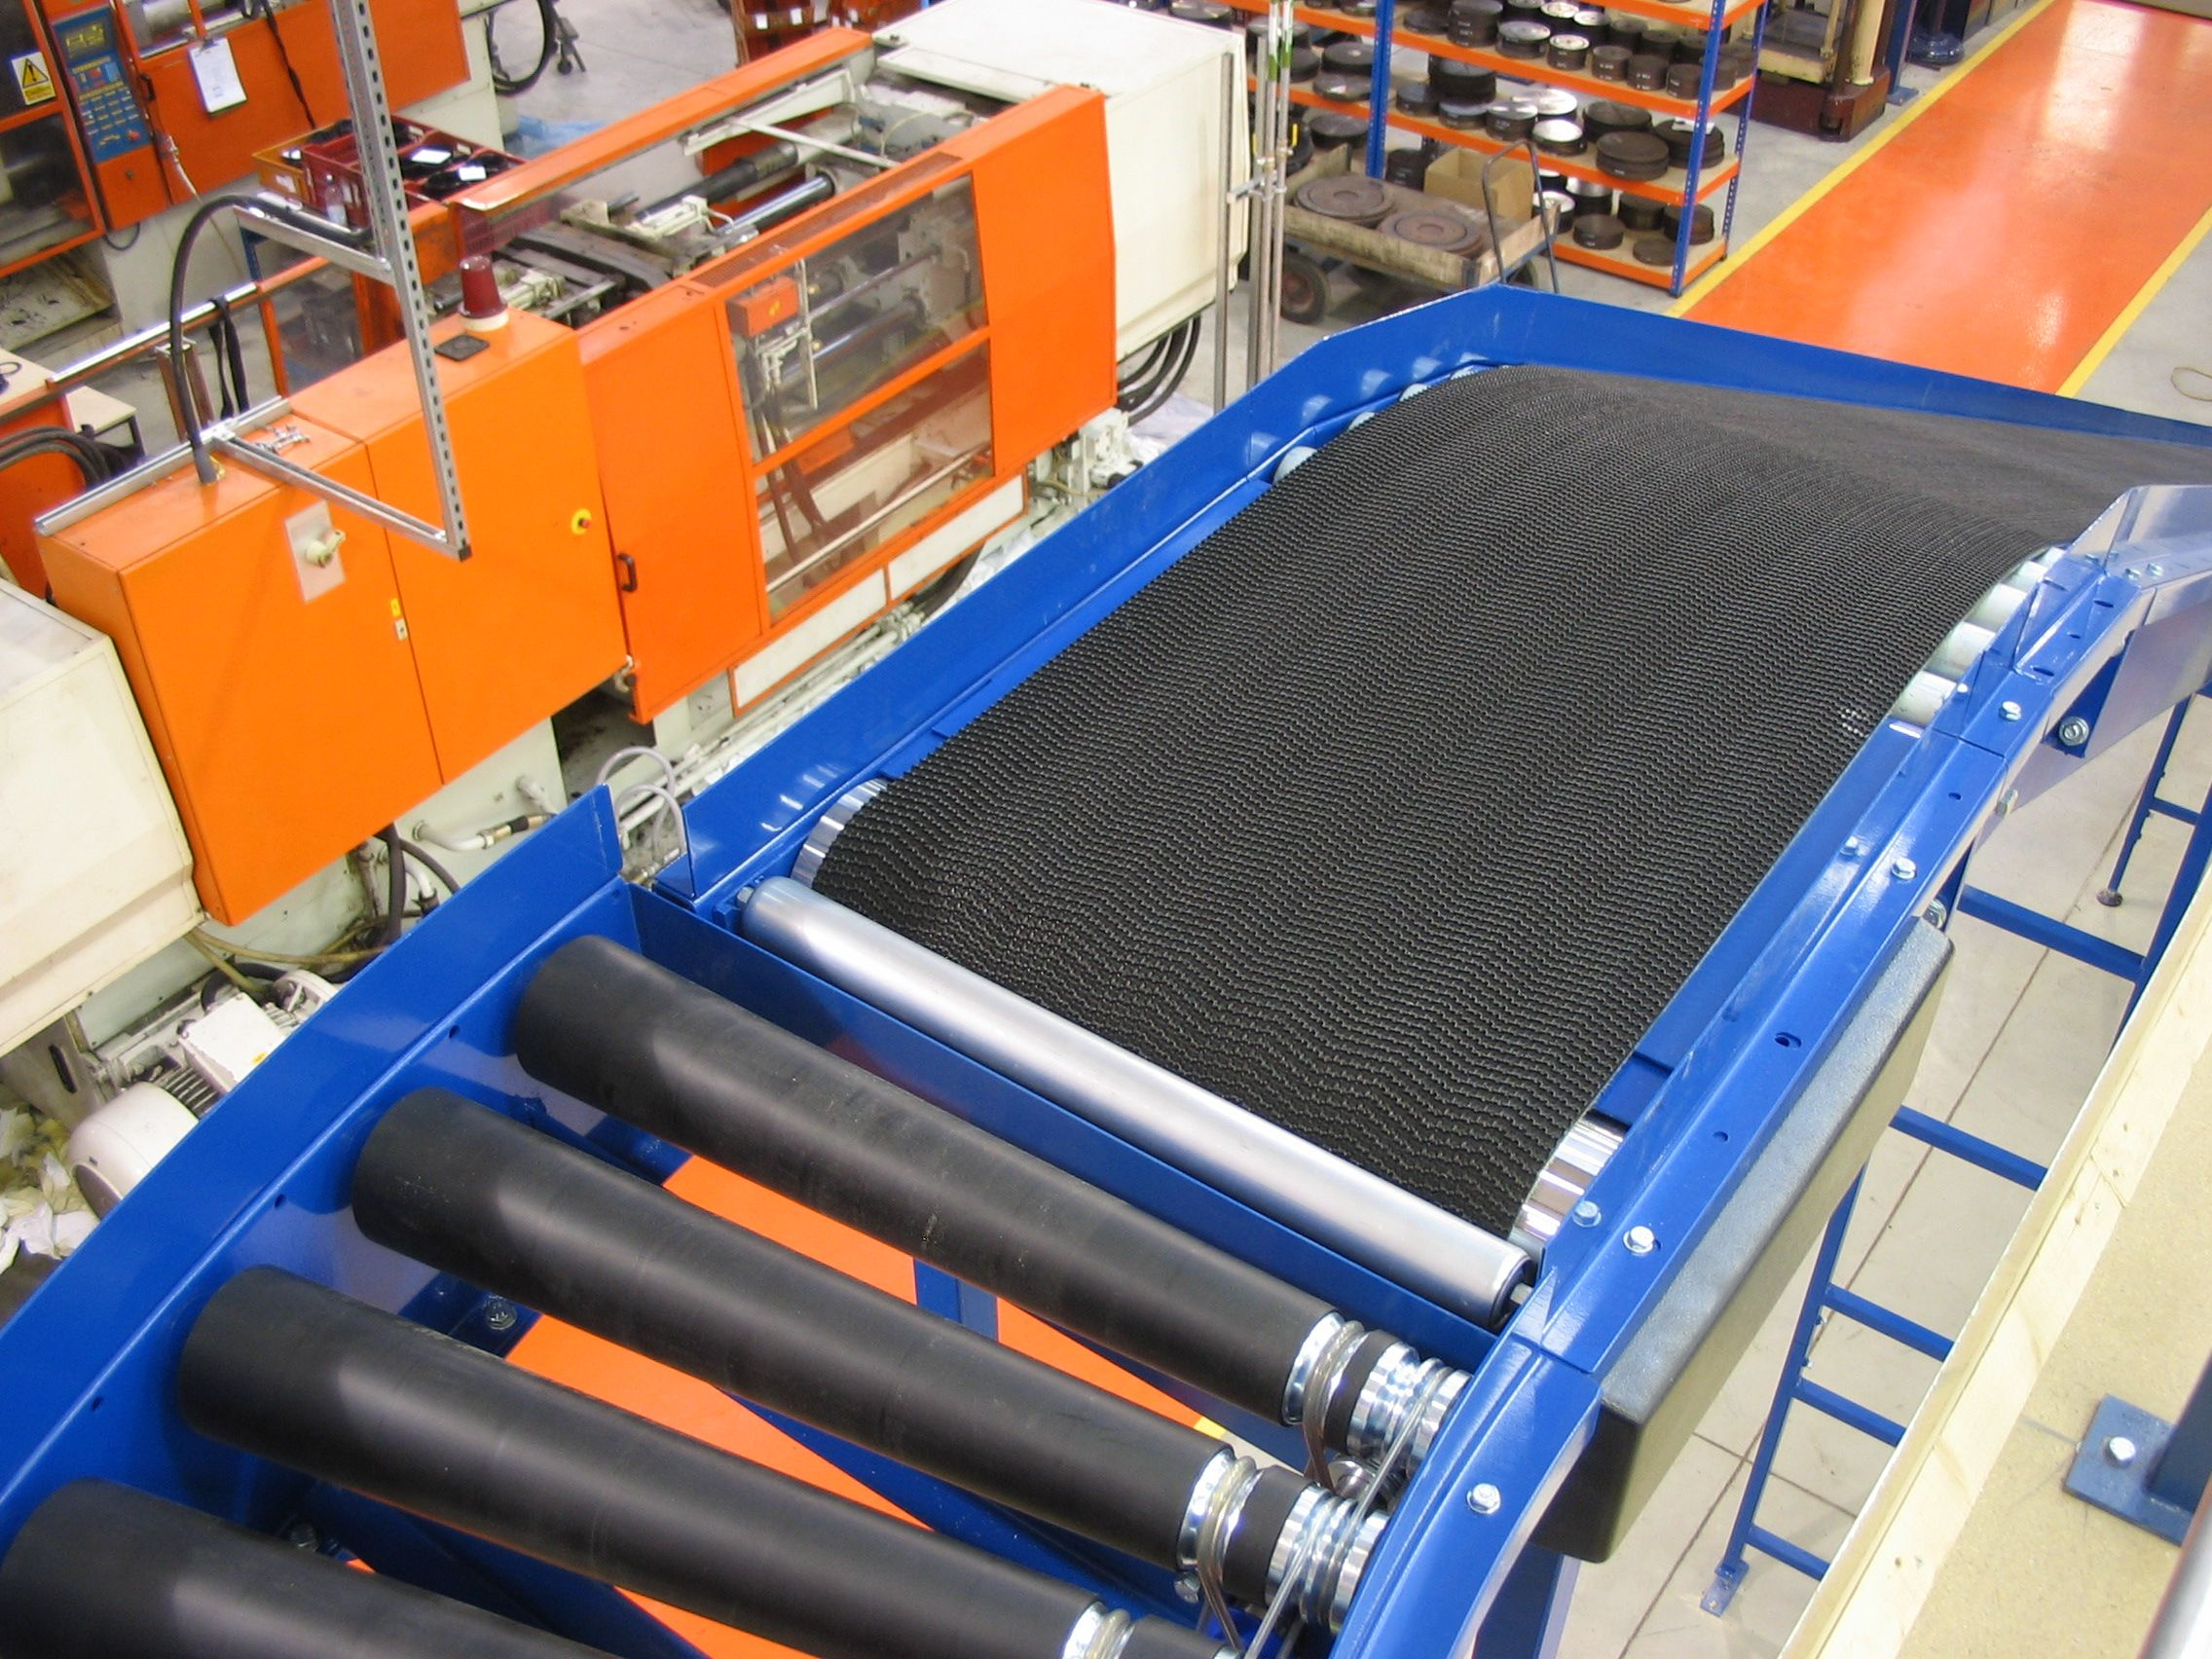 Inter-floor Conveyors for Mezzanine Floors